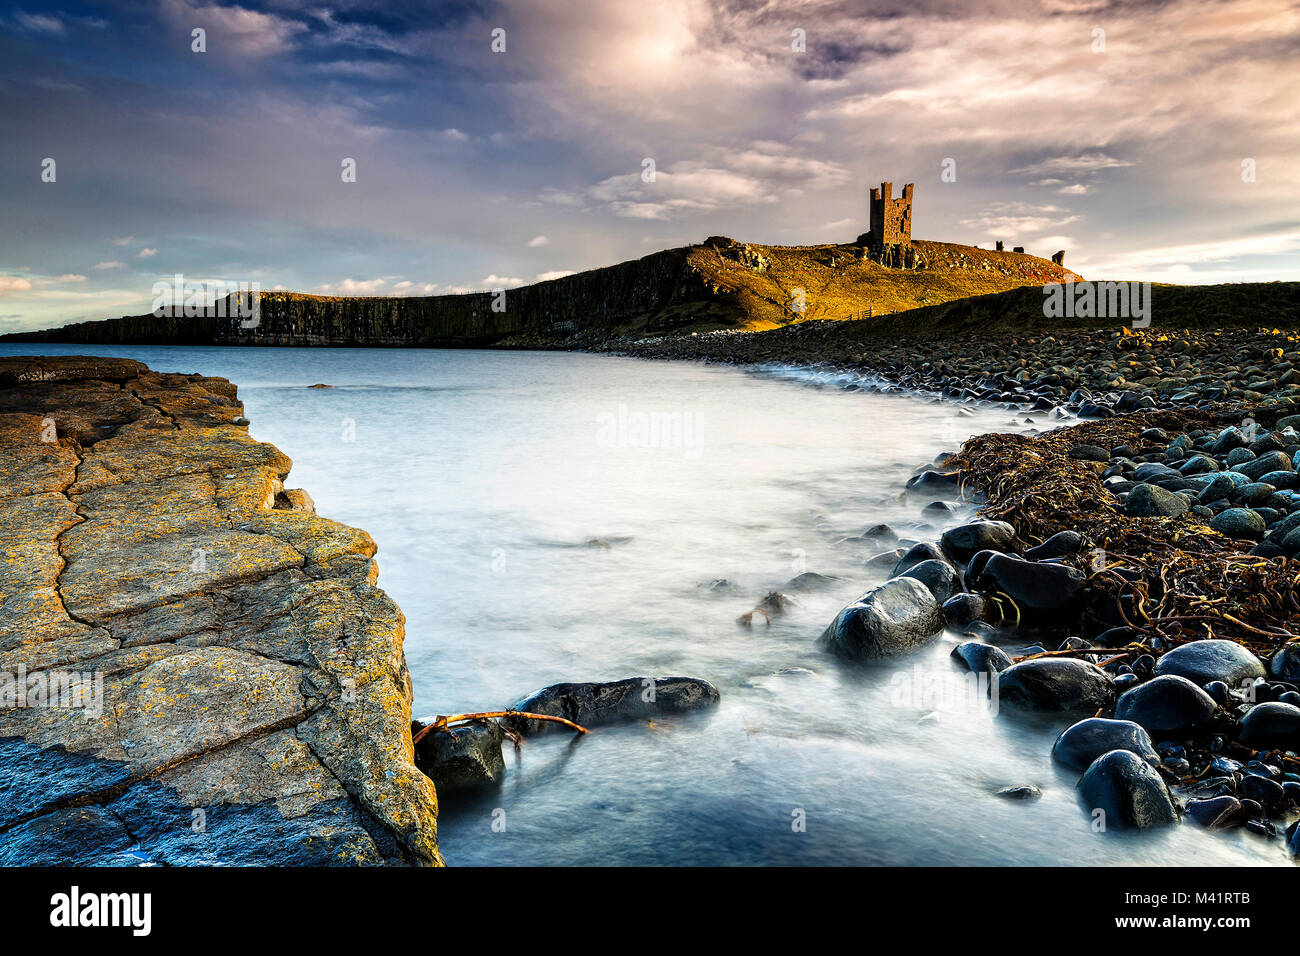 A photograph of Dunstanburgh Castle in Northumberland. - Stock Image